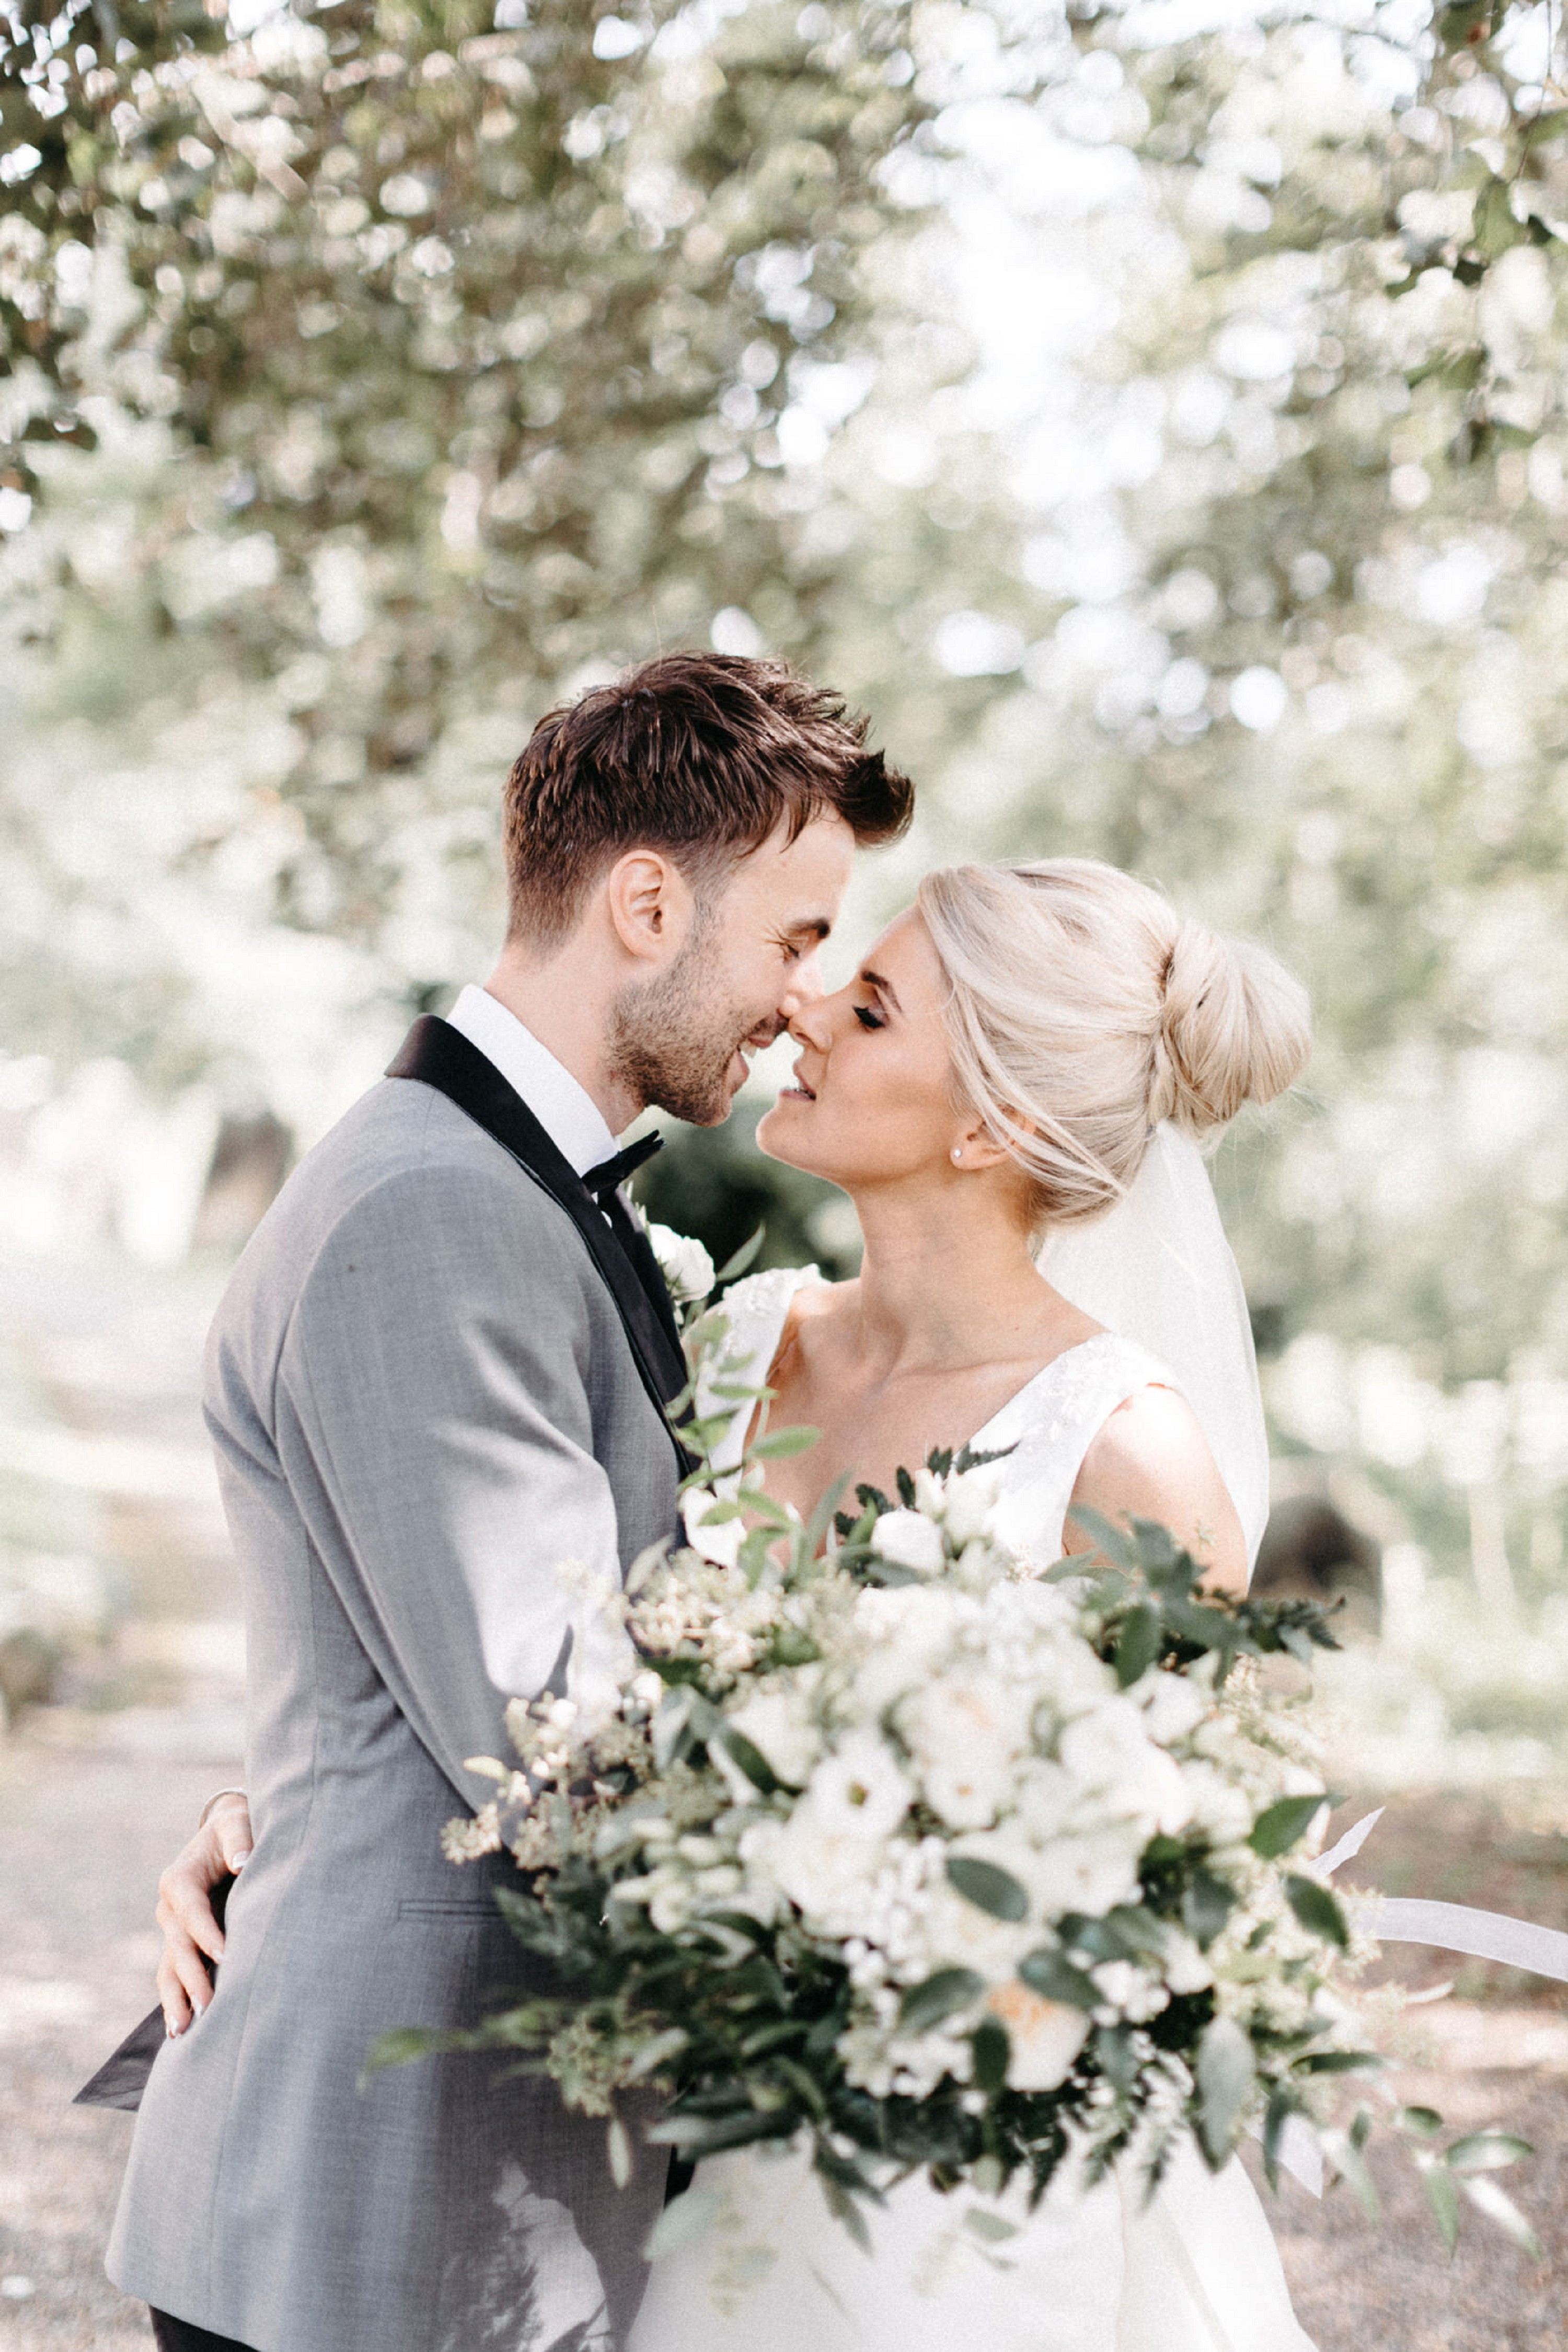 The Elegant Yorkshire Wedding of Eva + Charles in Hutton Rudby, North Yorkshire. A beautiful marquee wedding with chic decor. Minimal, elegant dress from Pronvias with stunning silhouette and over skirt. Simple, minimalist styling and muted colour palette. Wedding inspiration goals Photographed by Natalie Pluck. To see more of this wedding click the link: https://www.nataliepluck.com/elegant-yorkshire-wedding/ #elegantyorkshirewedding #yorkshirewedding #yorkshireweddingphotographer #yorkshireweddingphotography #bestyorkshireweddingphotographer #bestyorkshirephotographer #yorkshireweddinginspo #northyorkshirewedding #elegantwedding #elegantweddingphotography #margqeewedding #pronoviaswedding #pronovias #weddinginspiration